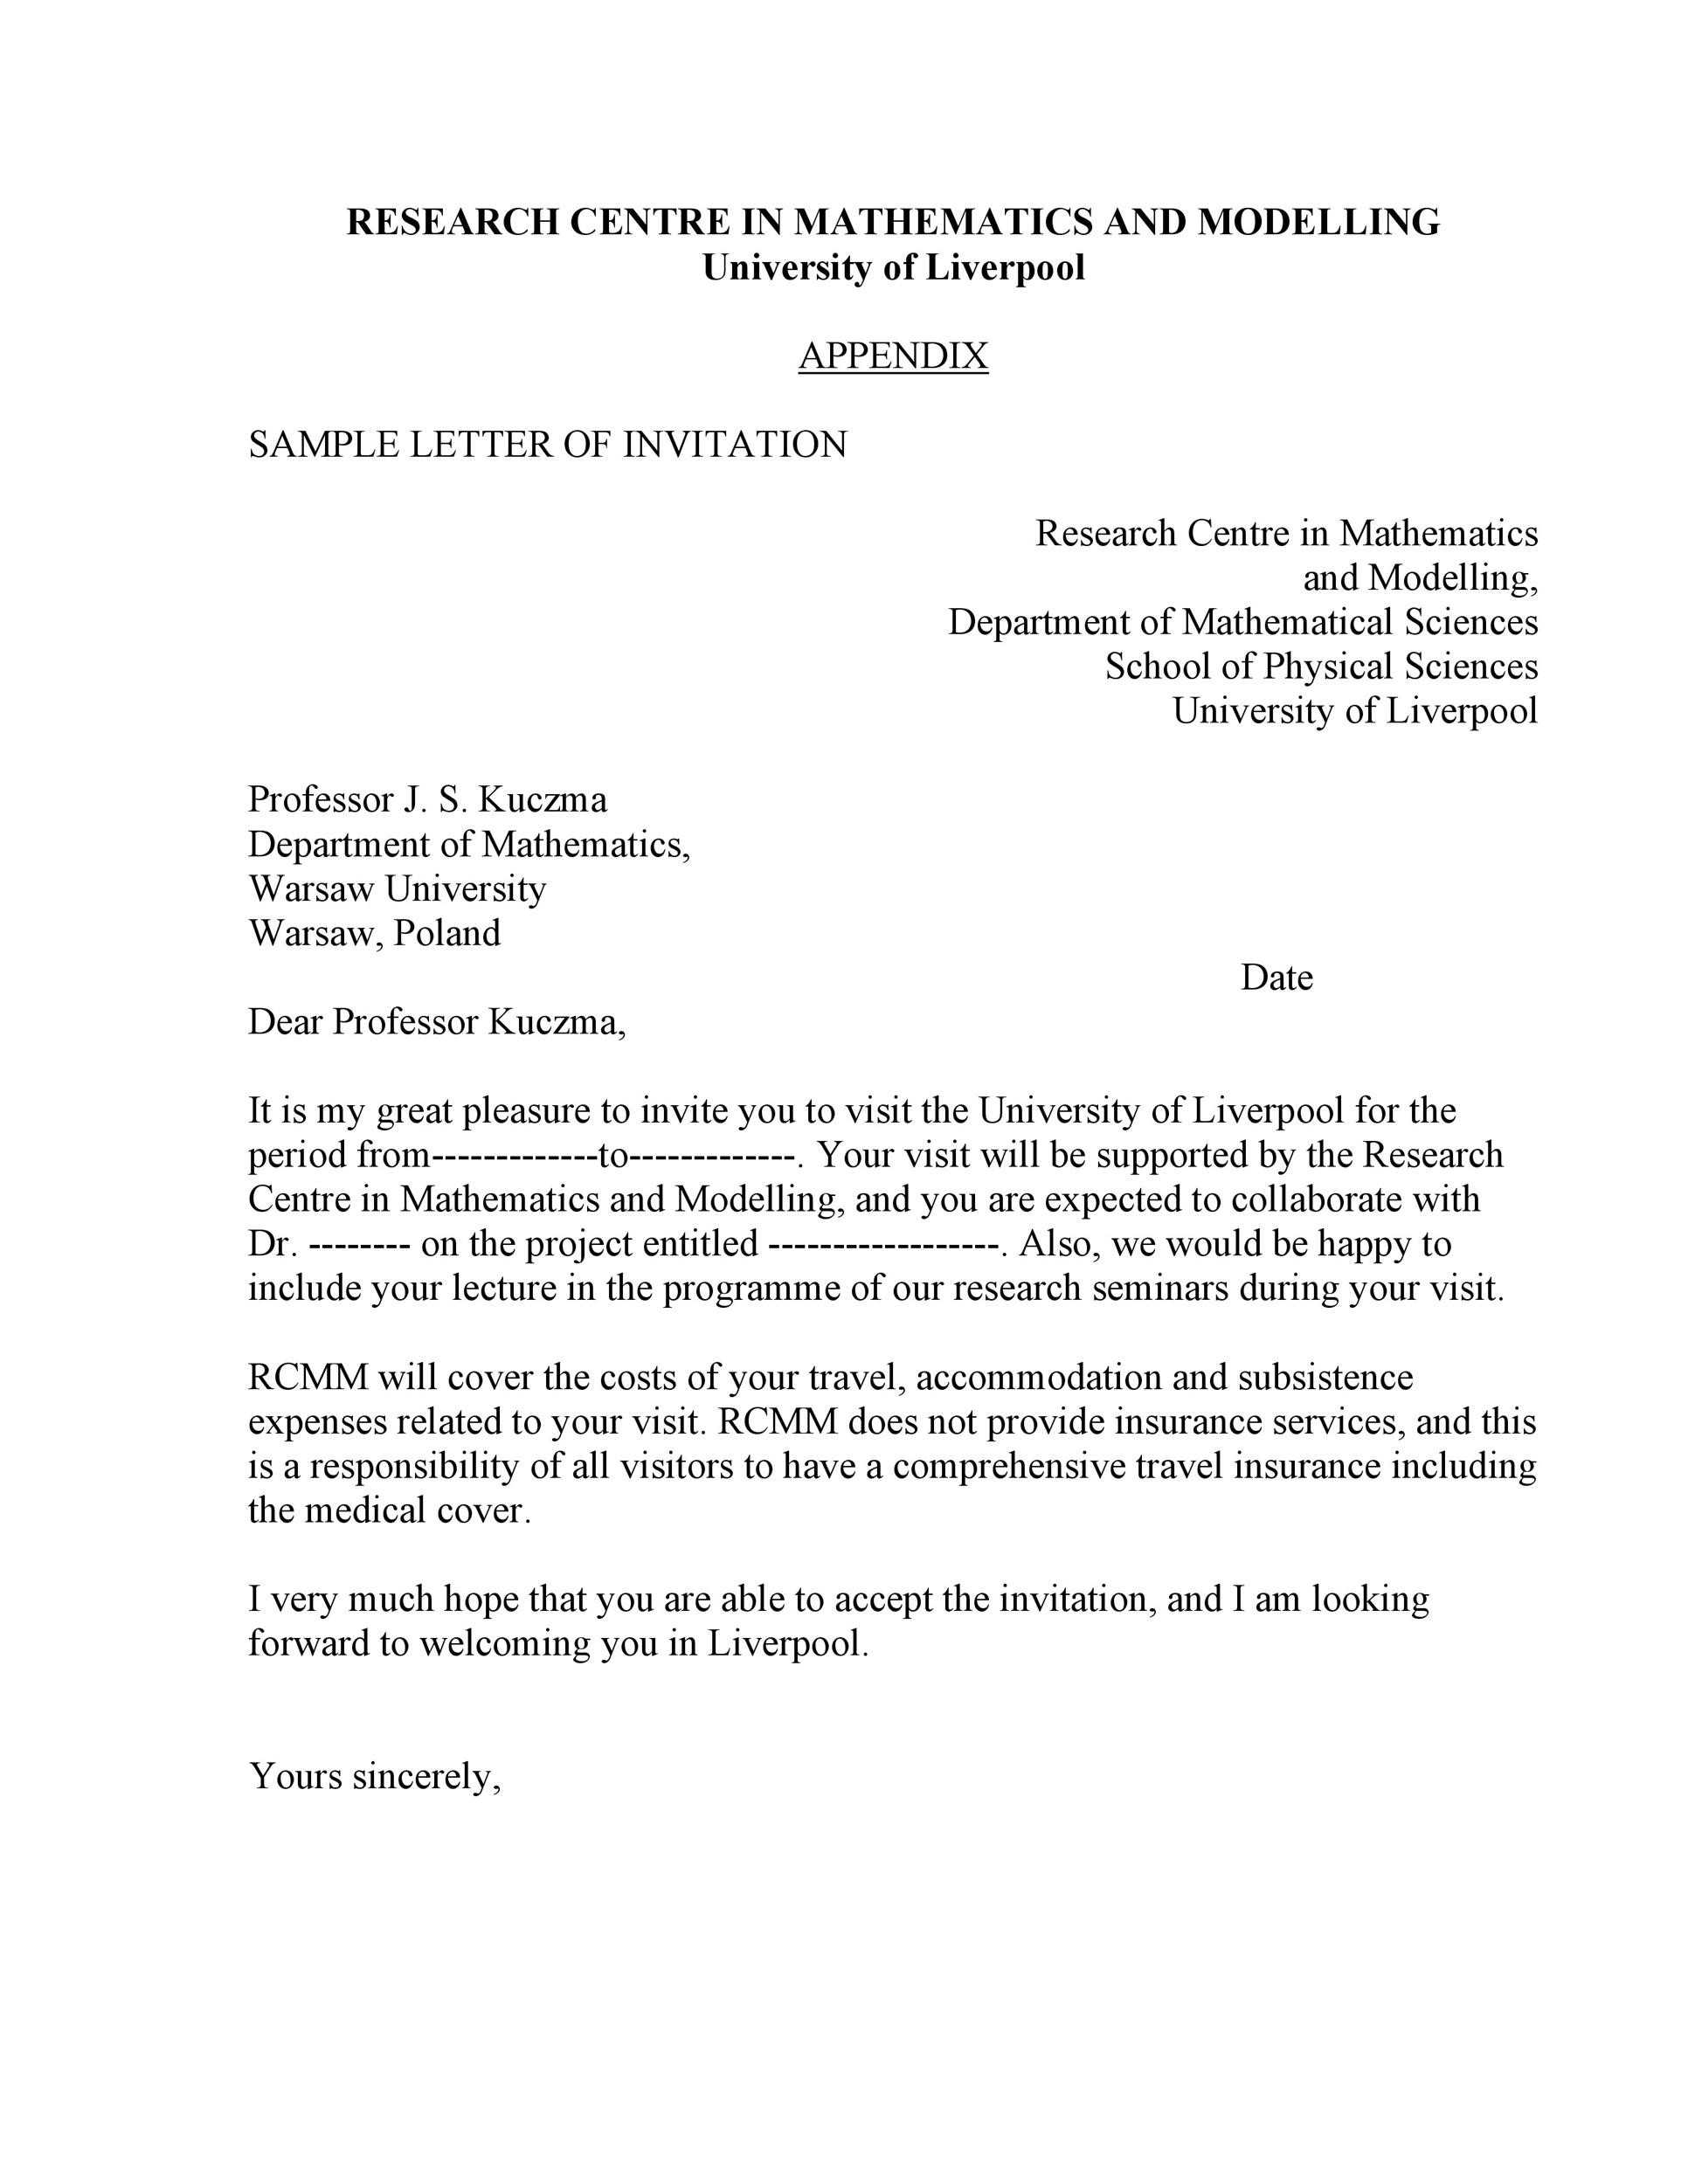 Invitation Letter For Guest Lecture In College from templatelab.com